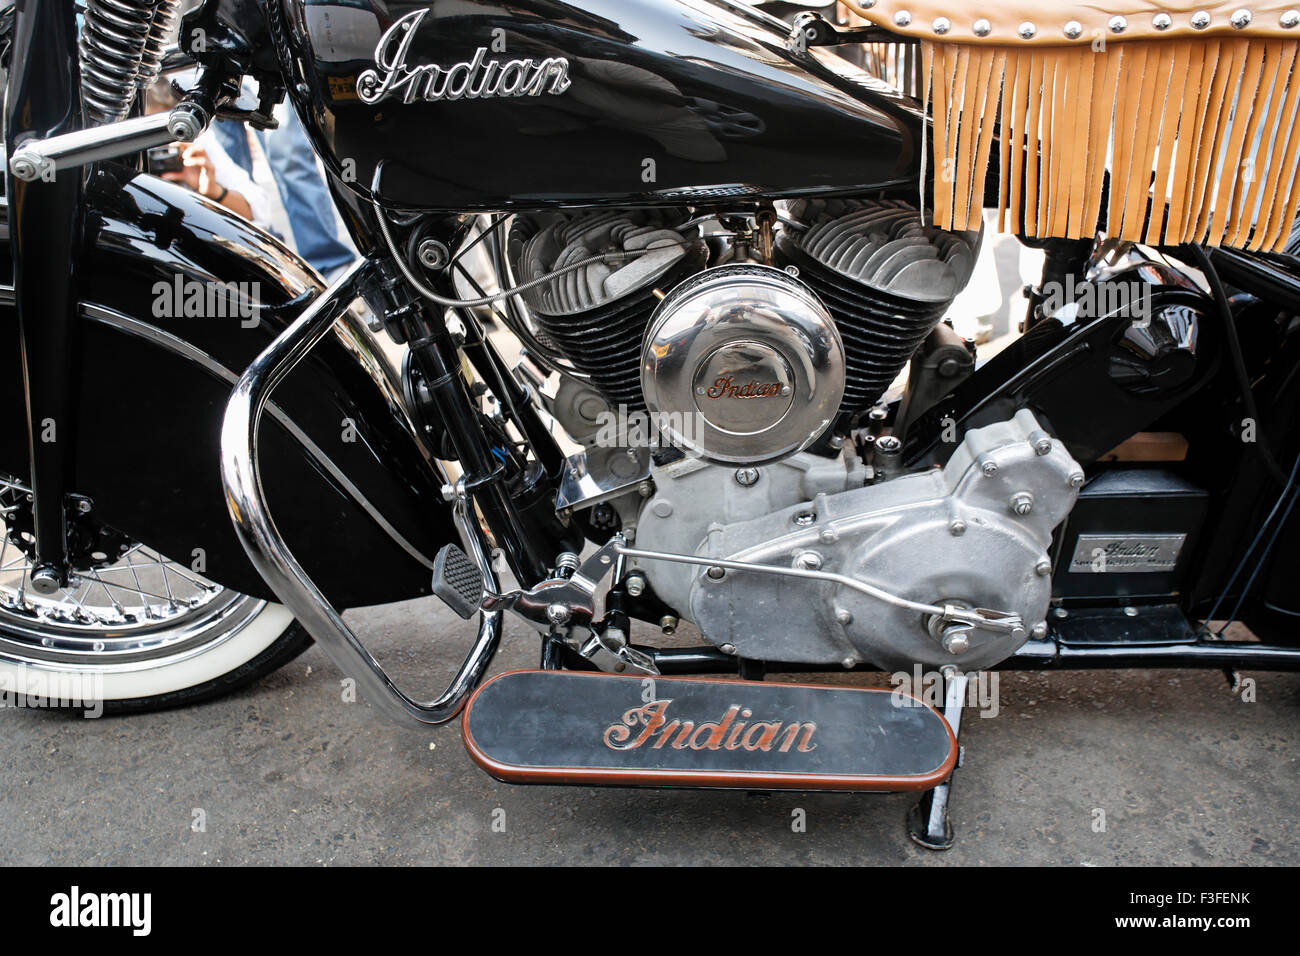 Vintage Indian Bike Stock Photo Royalty Free Image 88236671 Alamy